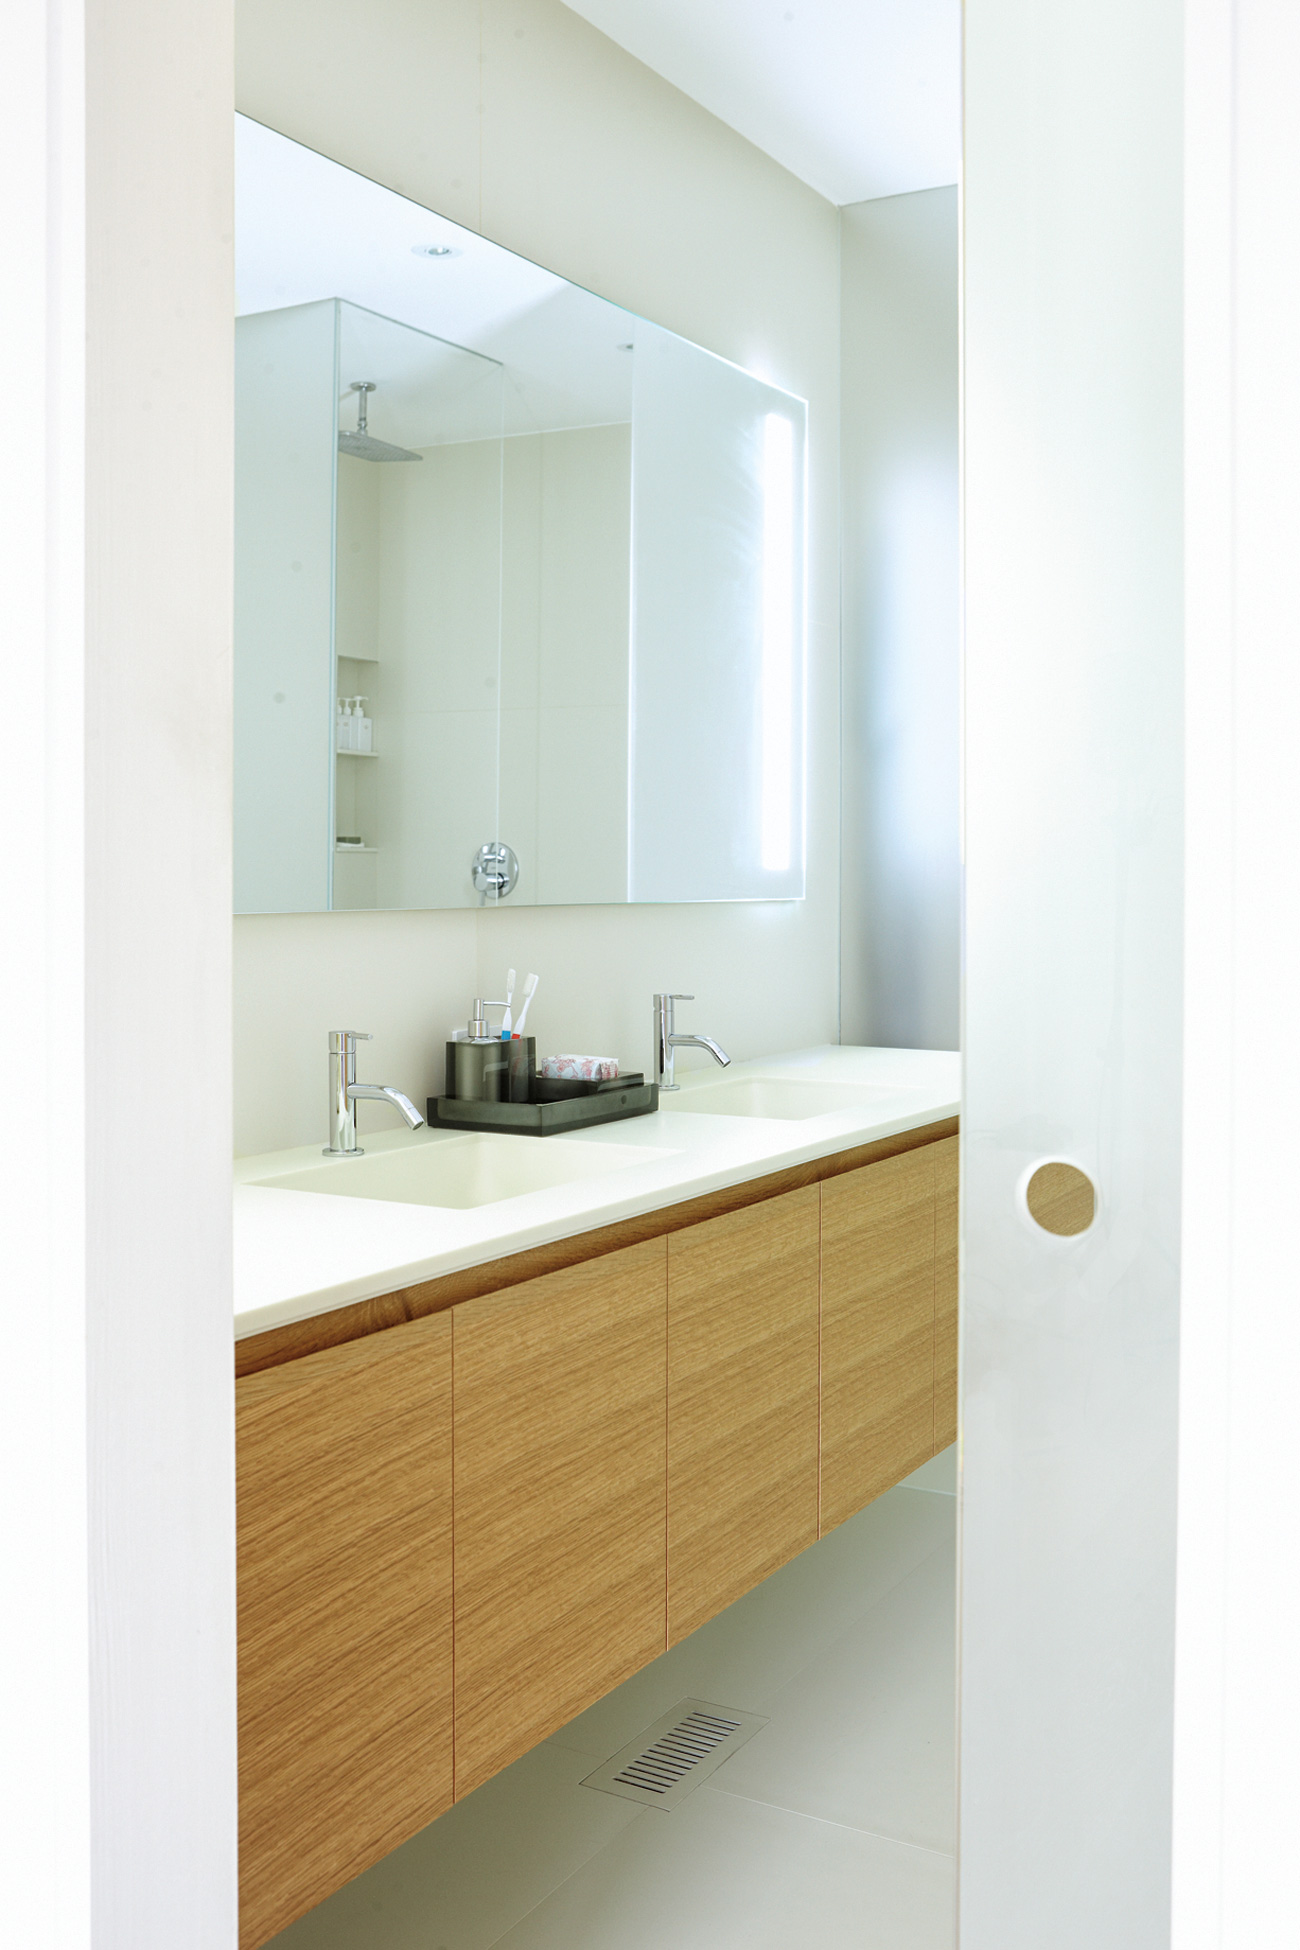 A glass pocket door opens to the master bath. The oak vanity's countertop, with built-in sinks, is Corian. Mirror by Lumidesign; accessories from Ginger's.